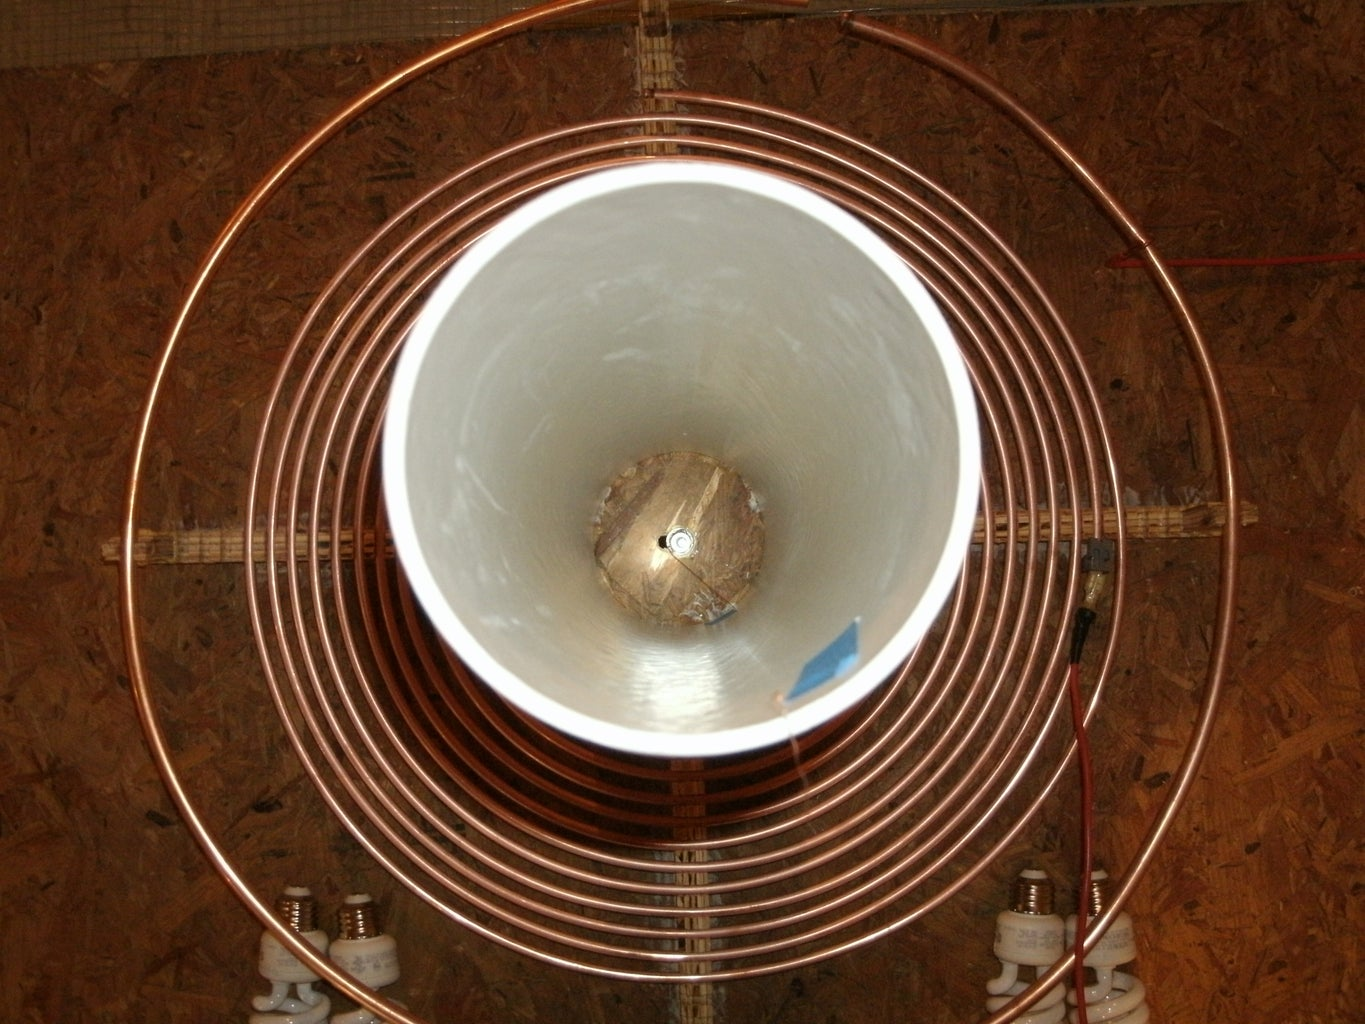 The Secondary Coil